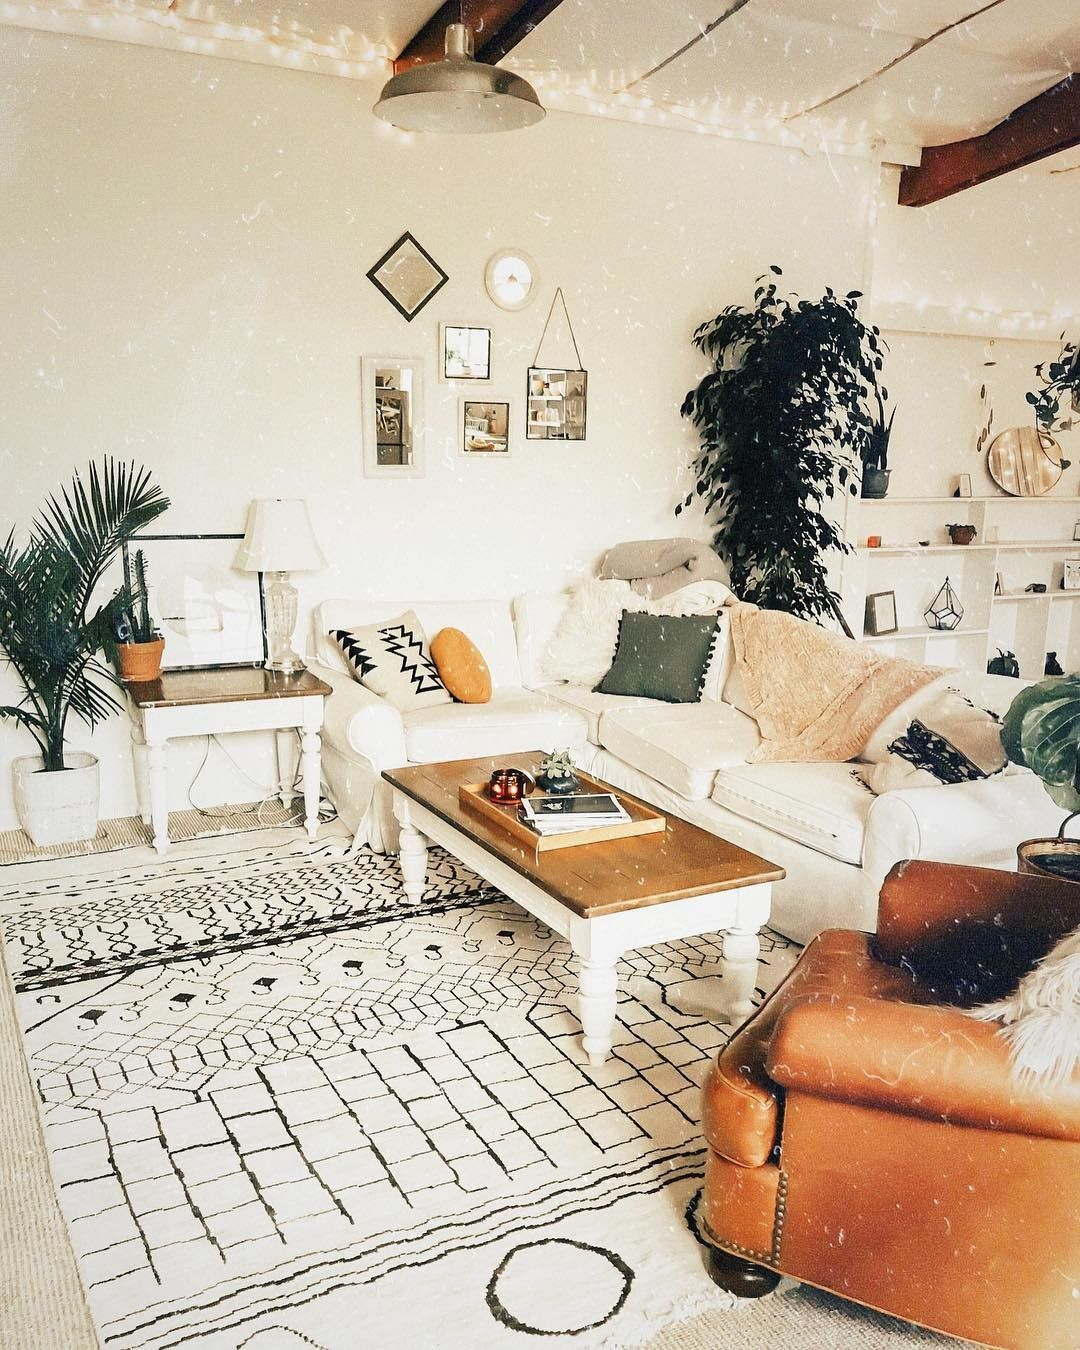 Image By Shayla Fureno On Abode Home Decor Interior Home